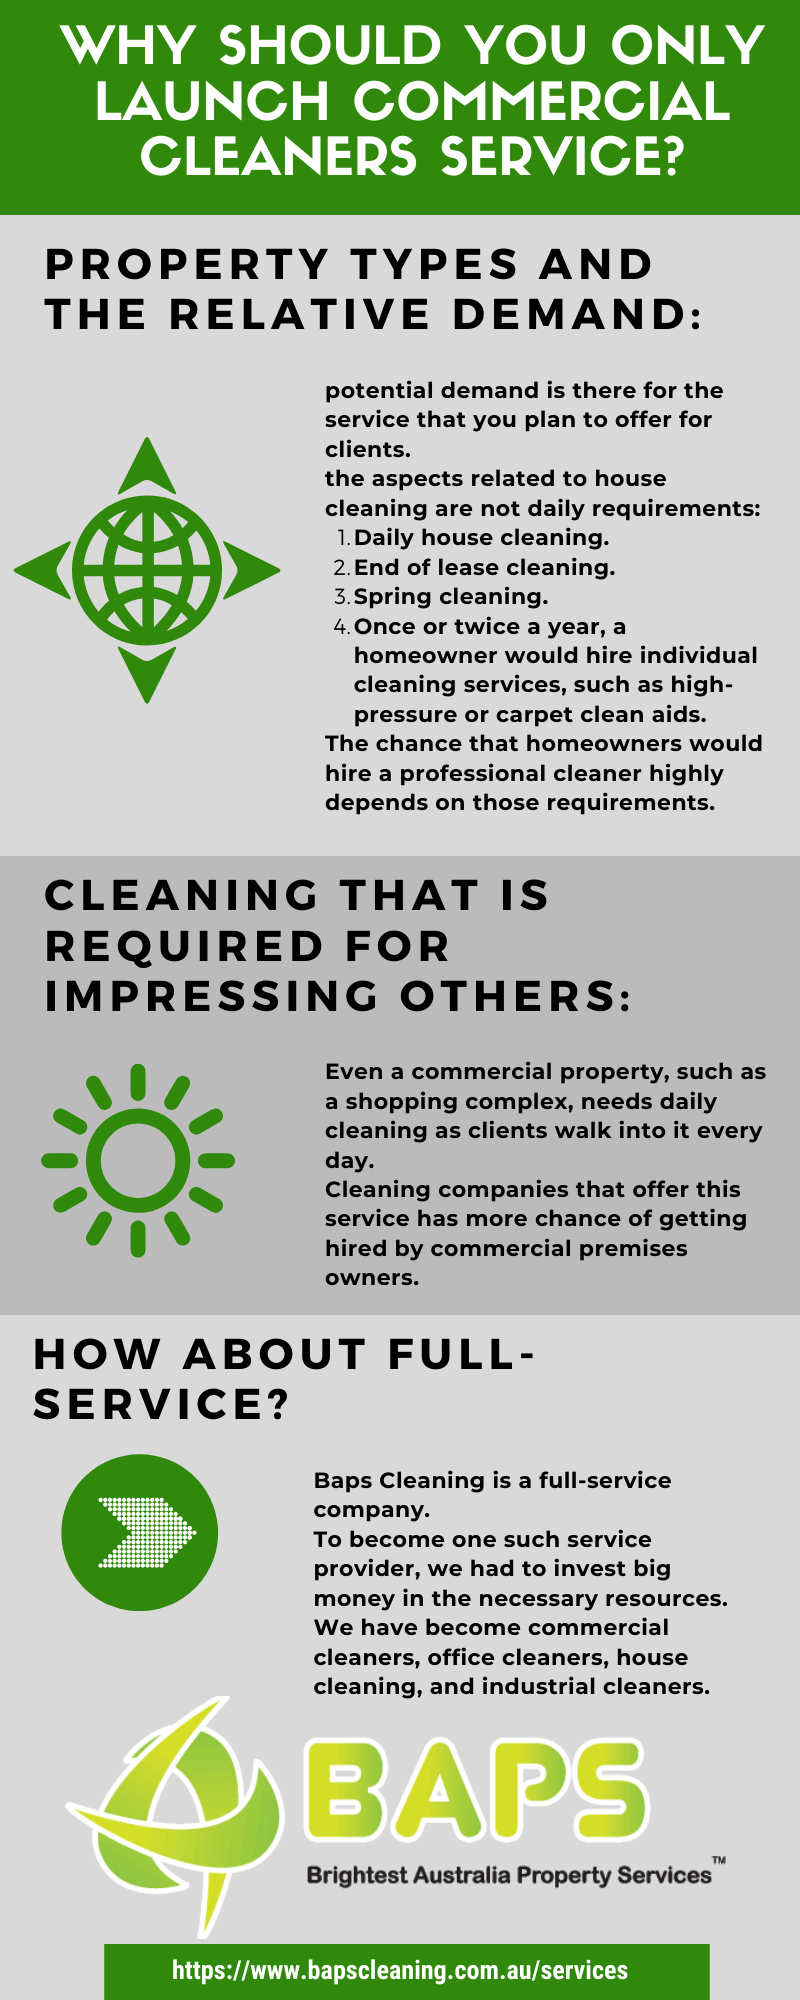 Why Should You Only Launch Commercial Cleaners Service?